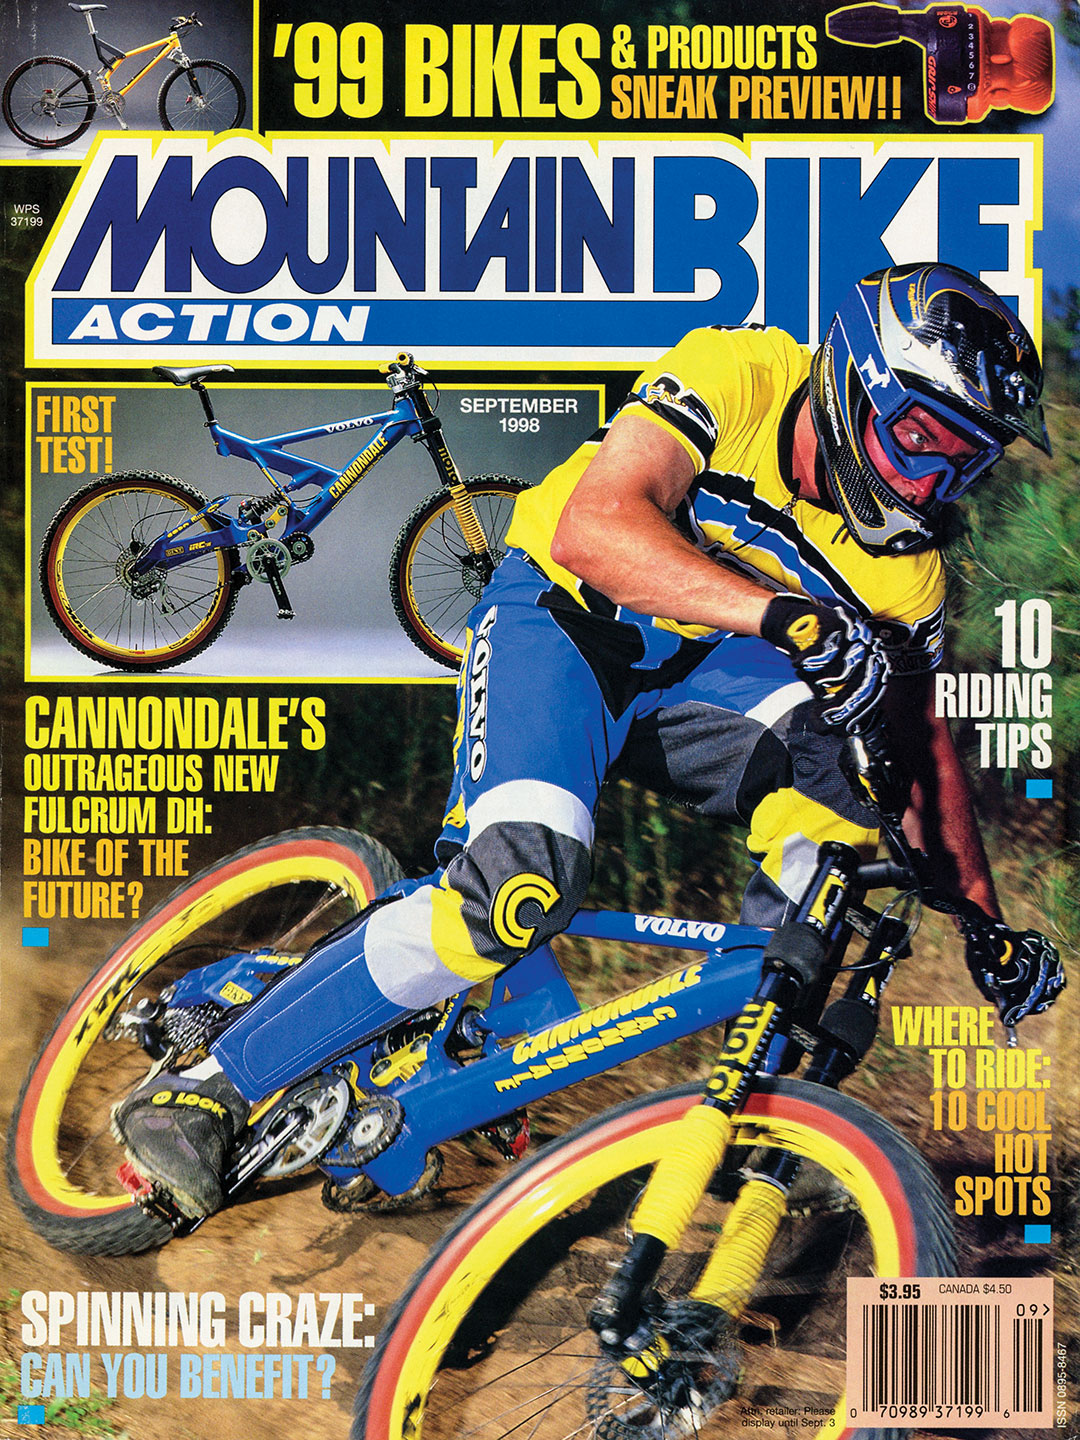 Our September 1998 Issue Featured A Ton Of 99 Bikes And Products That Were Ready To Hit The Bike Shops Besides Test Cannondale Fulcrum DH Seen